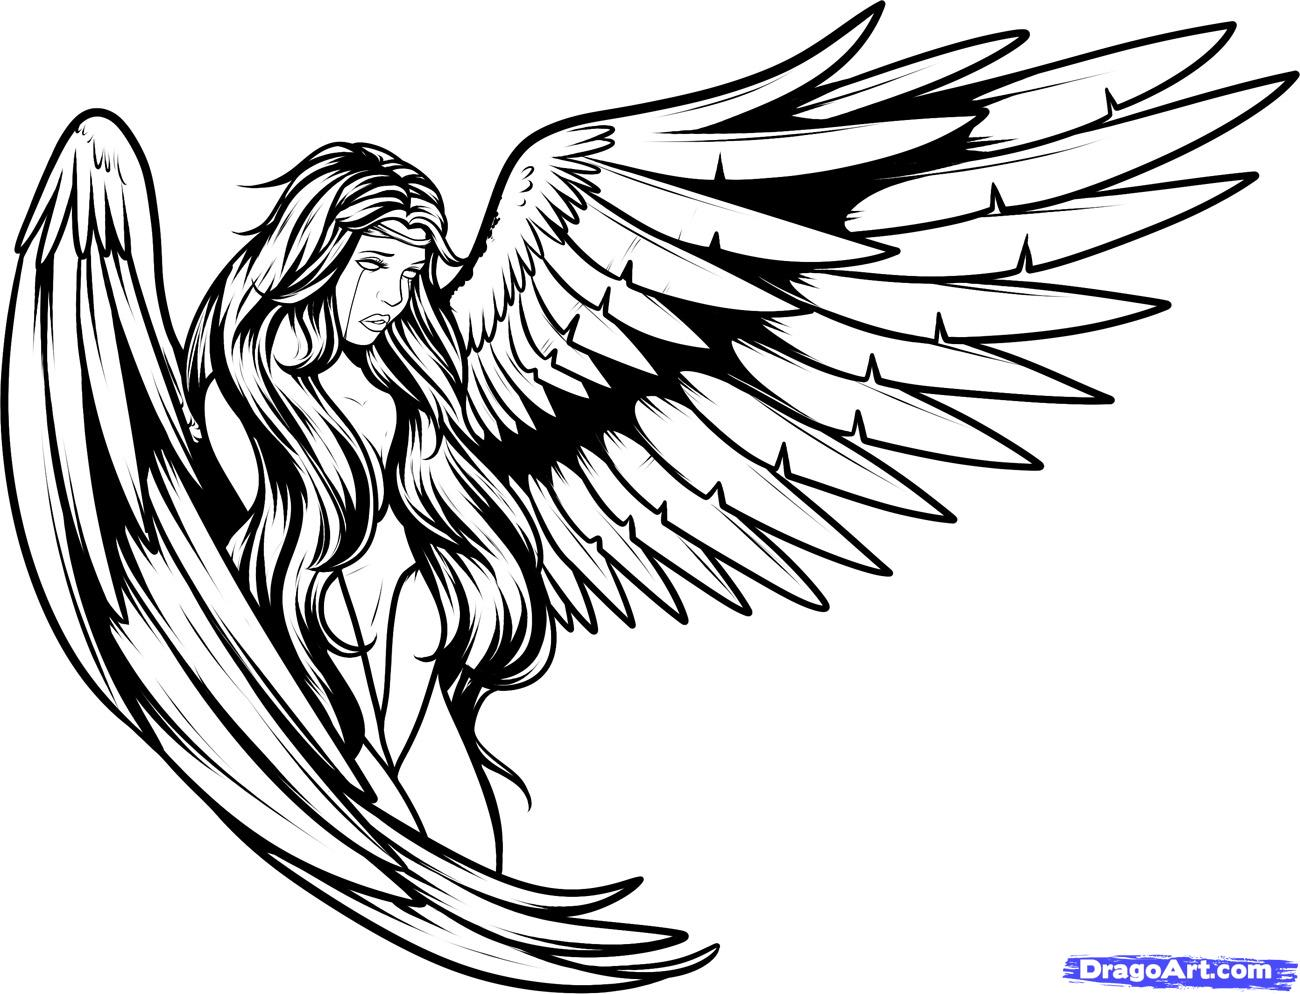 Angel Tattoo Images & Designs